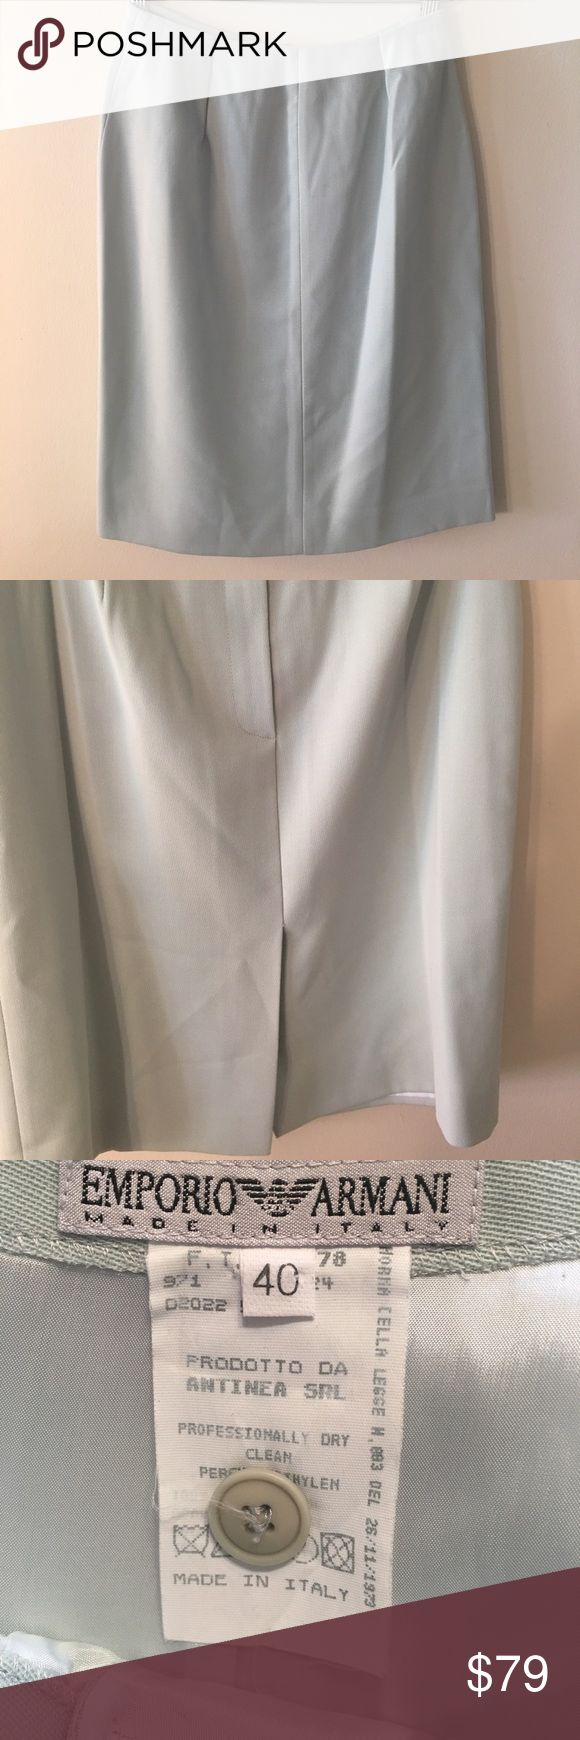 ⭐️EMPORIO ARMANI SKIRT 💯AUTHENTIC EMPORIO ARMANI LOVELY SKIRT 100% AUTHENTIC. STUNNING AND STYLISH ALWAYS ON TREND. THE SKIRT IS A EUROPEAN 40 WHICH CONVERTS TO A SIZE 8 . THE COLOR IS PALE GREEN. REAR ZIPPER. THE HIP MEASUREMENT IS 19 INCHES WIDE AND 38 INCHES AROUND. THE LENGTH IS 21 INCHES FROM TOP TO BOTTOM Emporio Armani Skirts